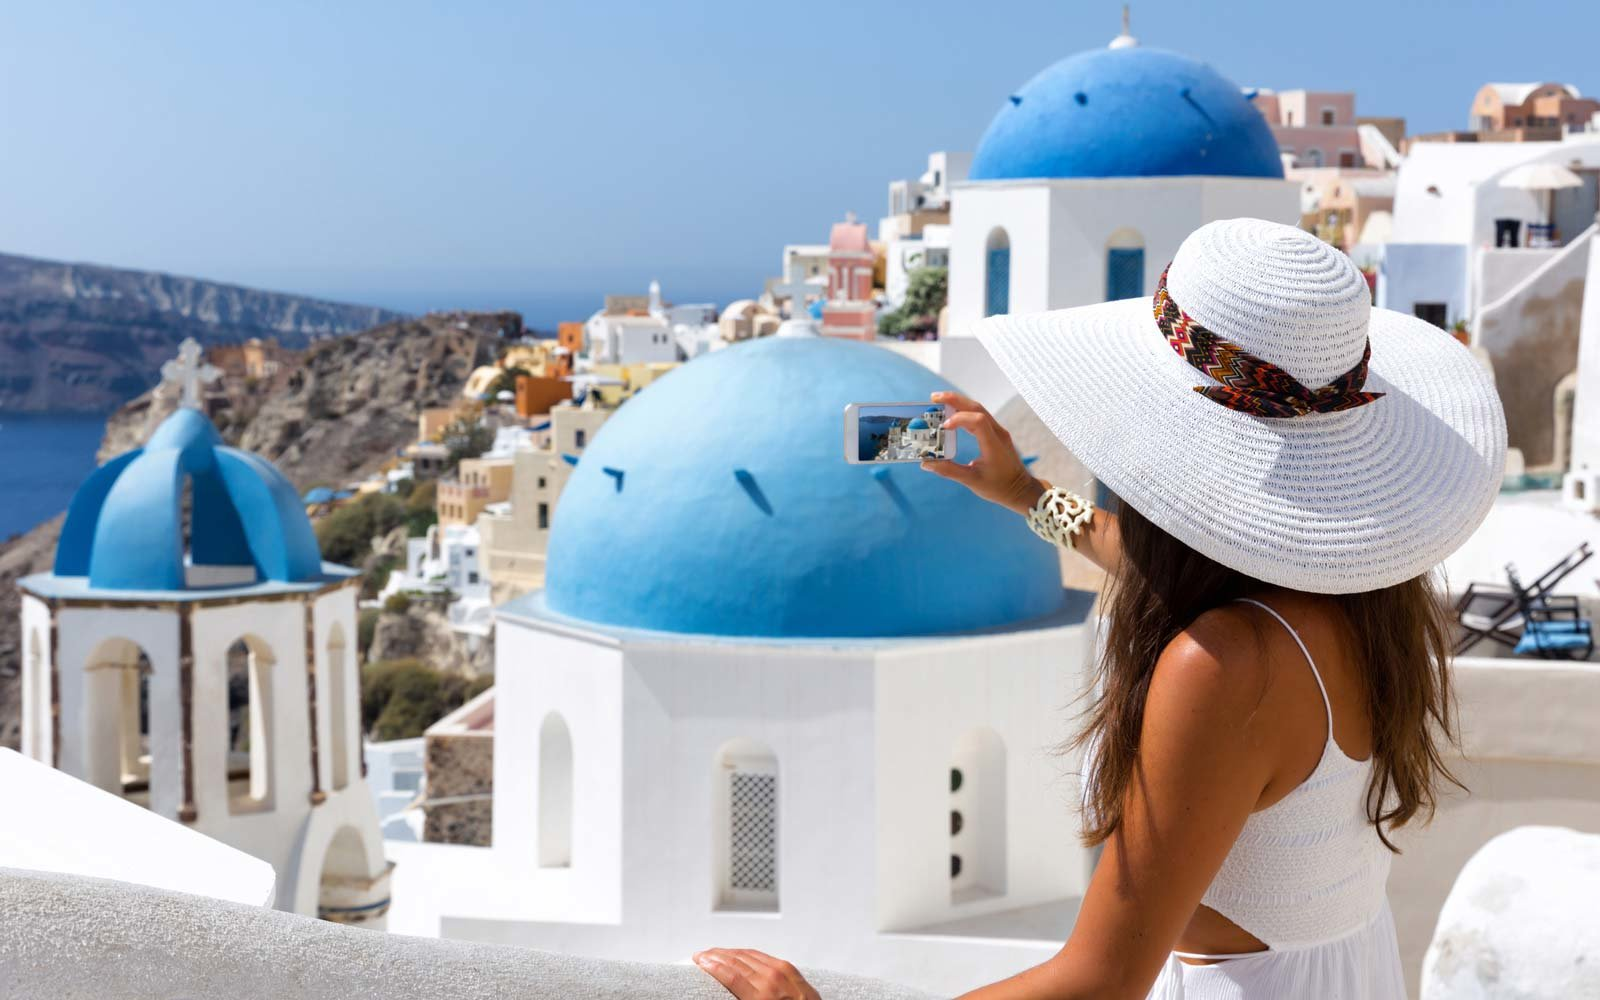 Woman is taking photos in Oia, Santorini